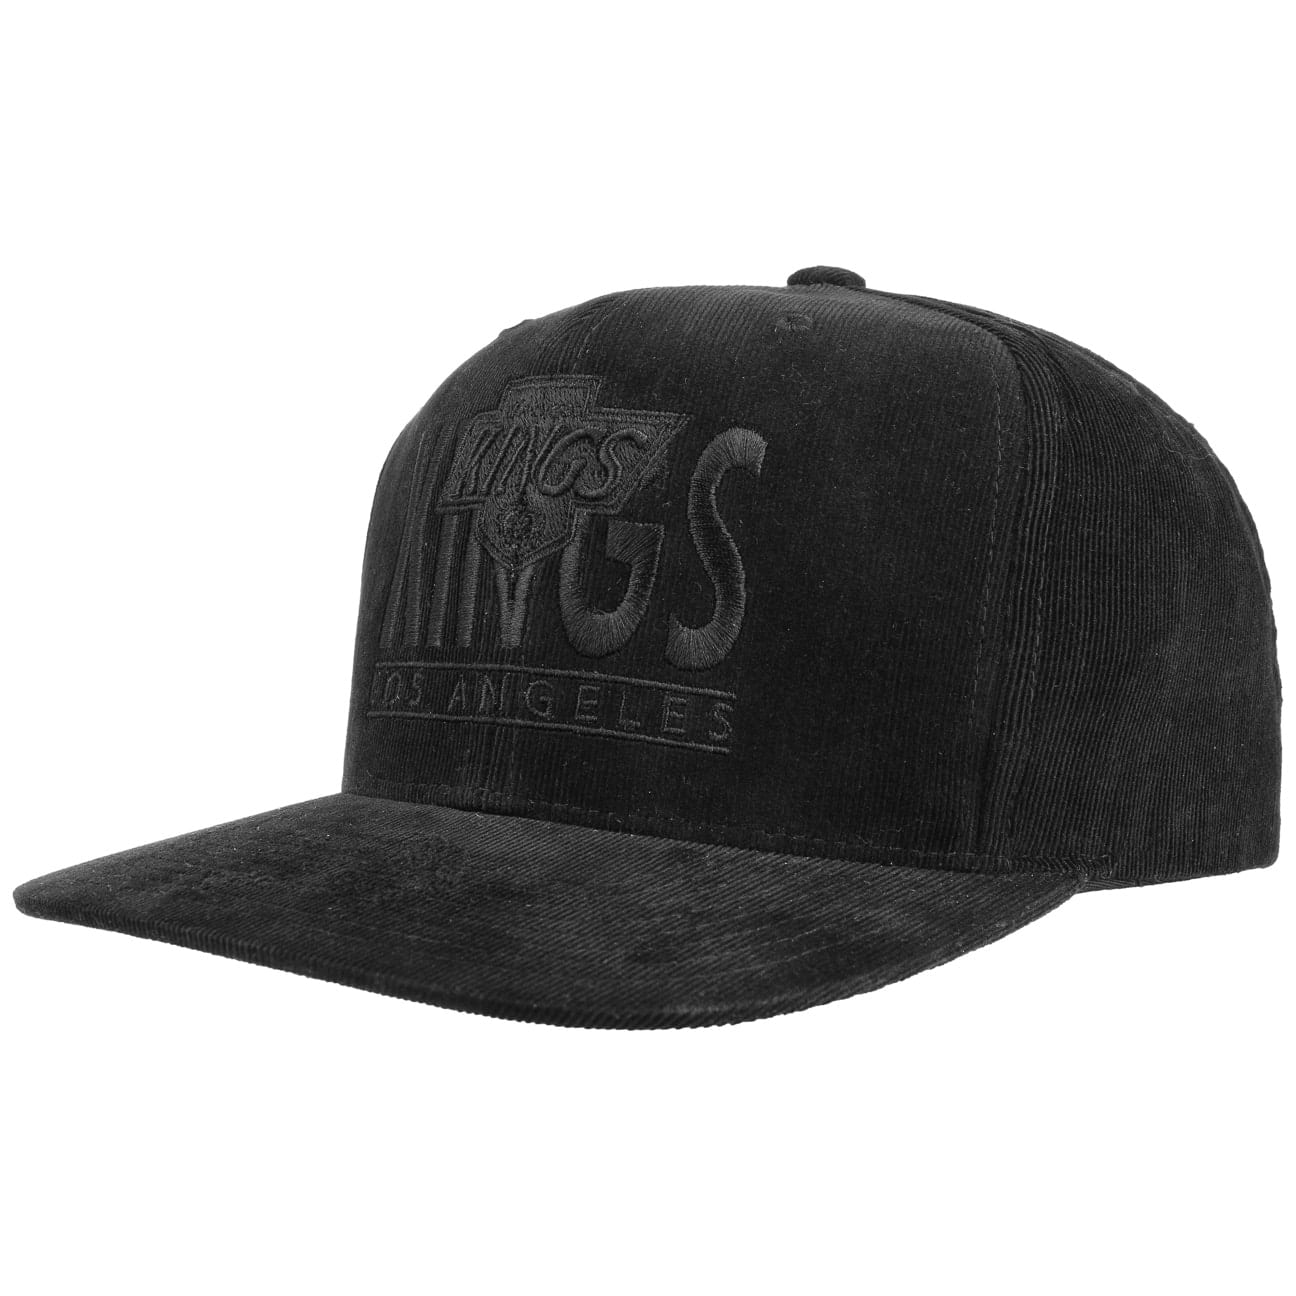 Gorra Corduroy LA Kings by Mitchell & Ness  base cap